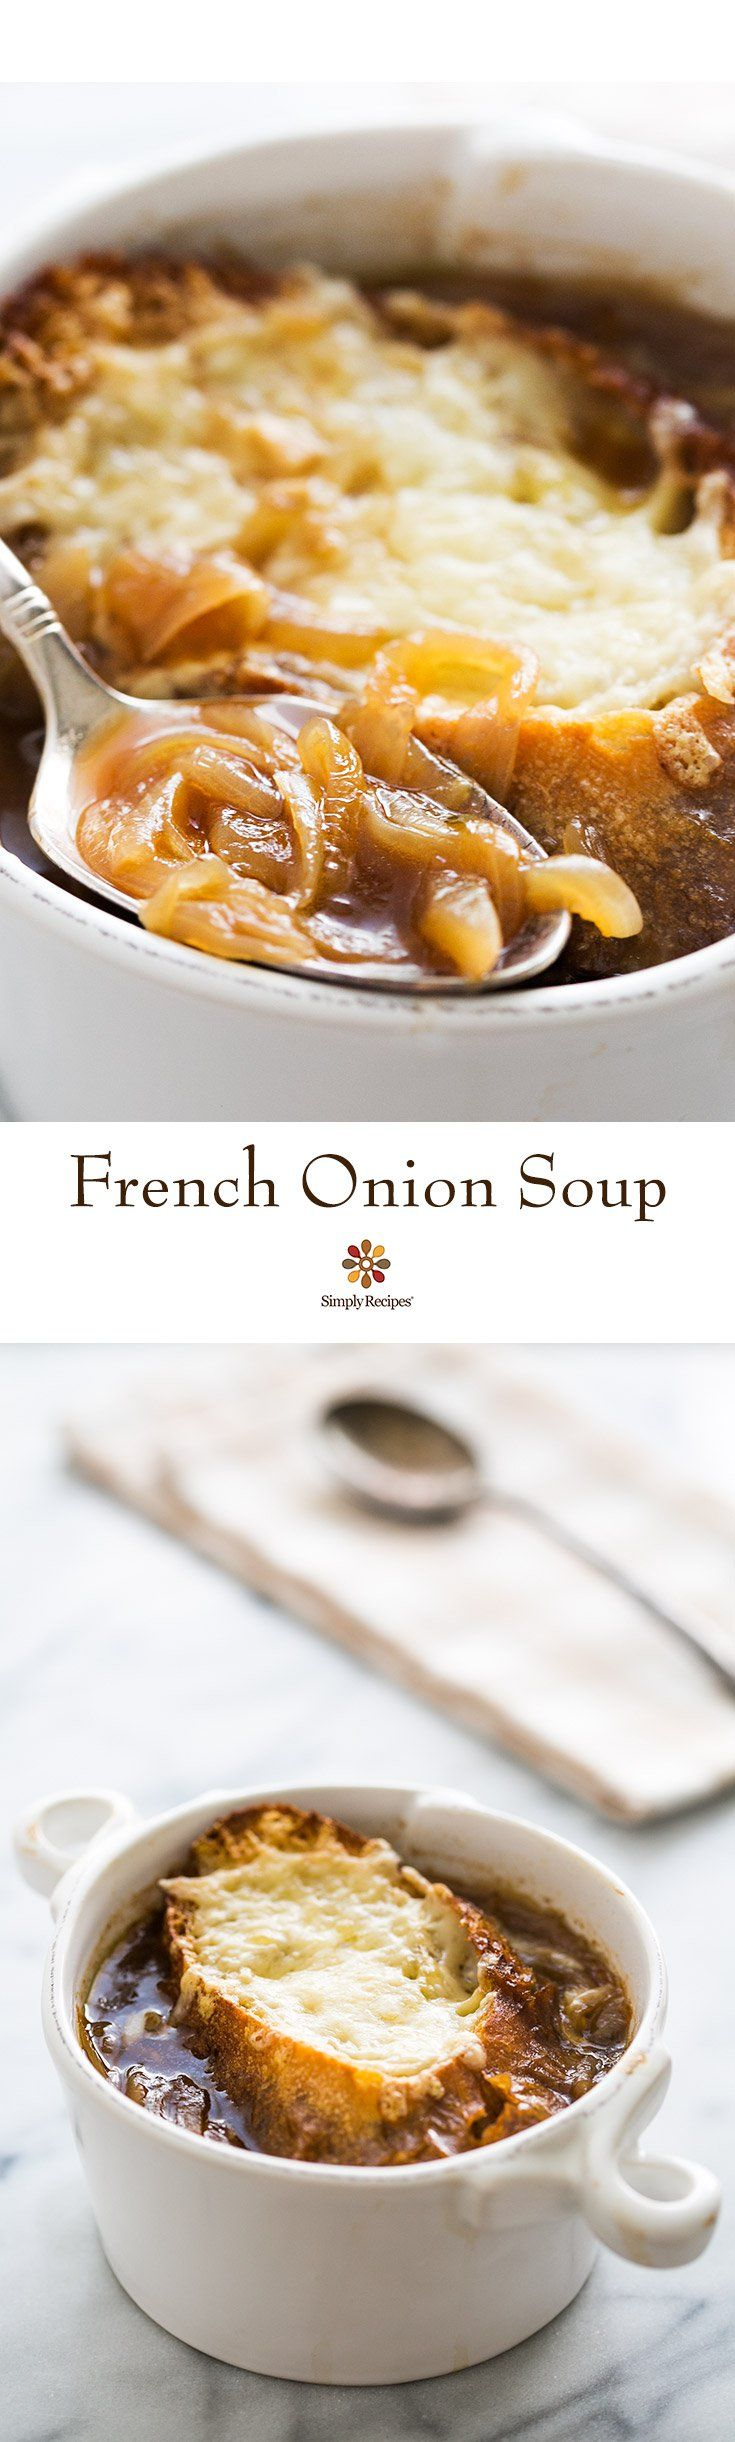 Classic simple French onion soup! With beef stock base, slow-cooked caramelized onions, French bread, gruyere and Parmesan cheese. ~ SimplyRecipes.com